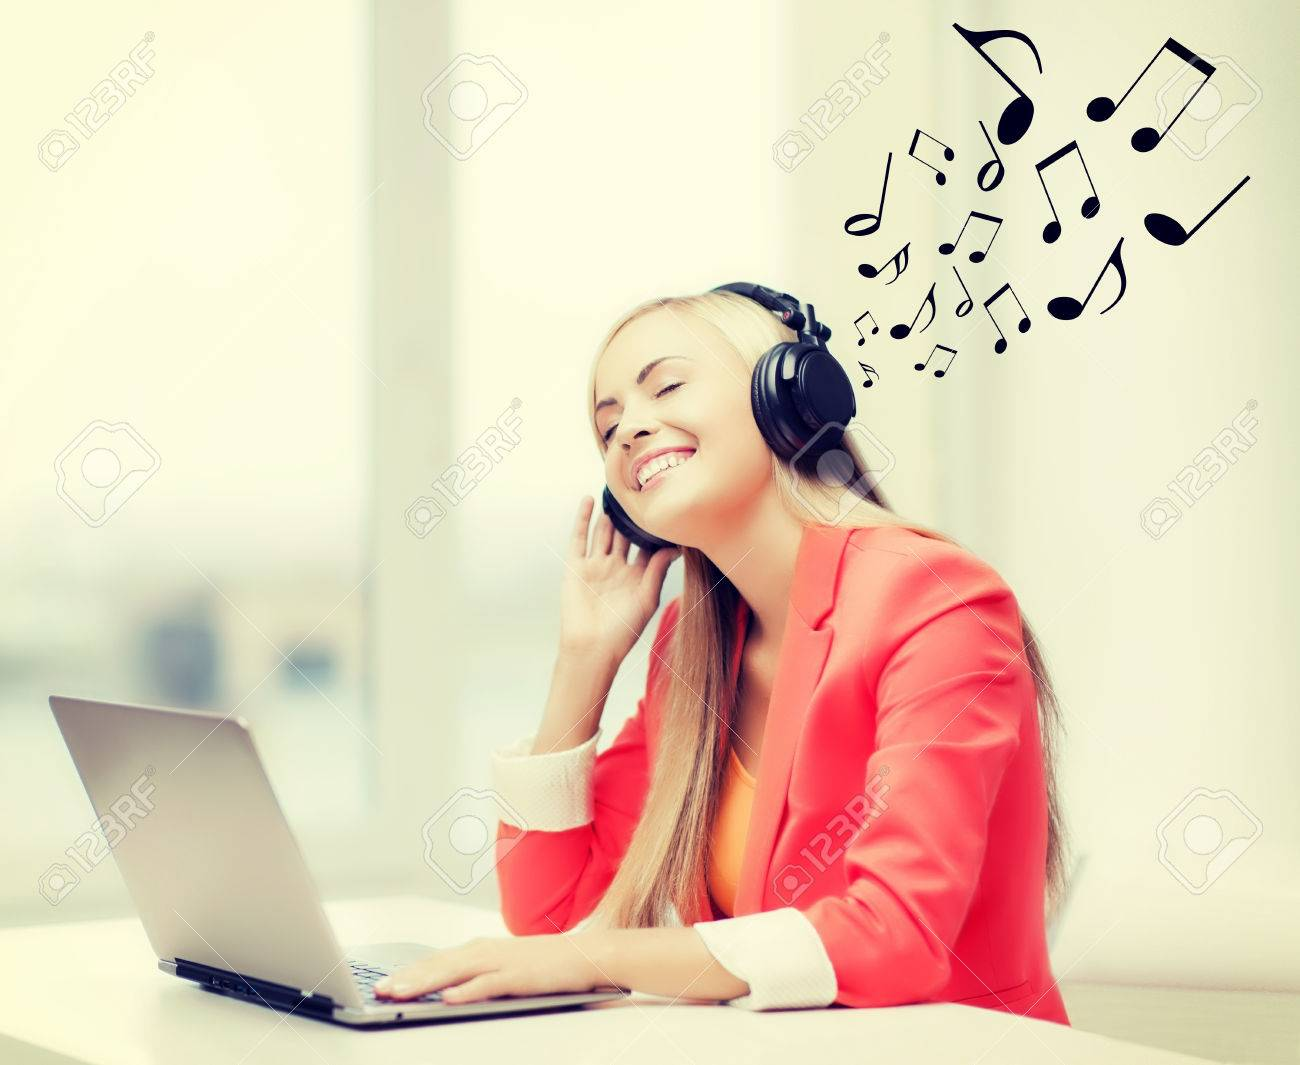 leisure, music, free time, online and internet concept - happy